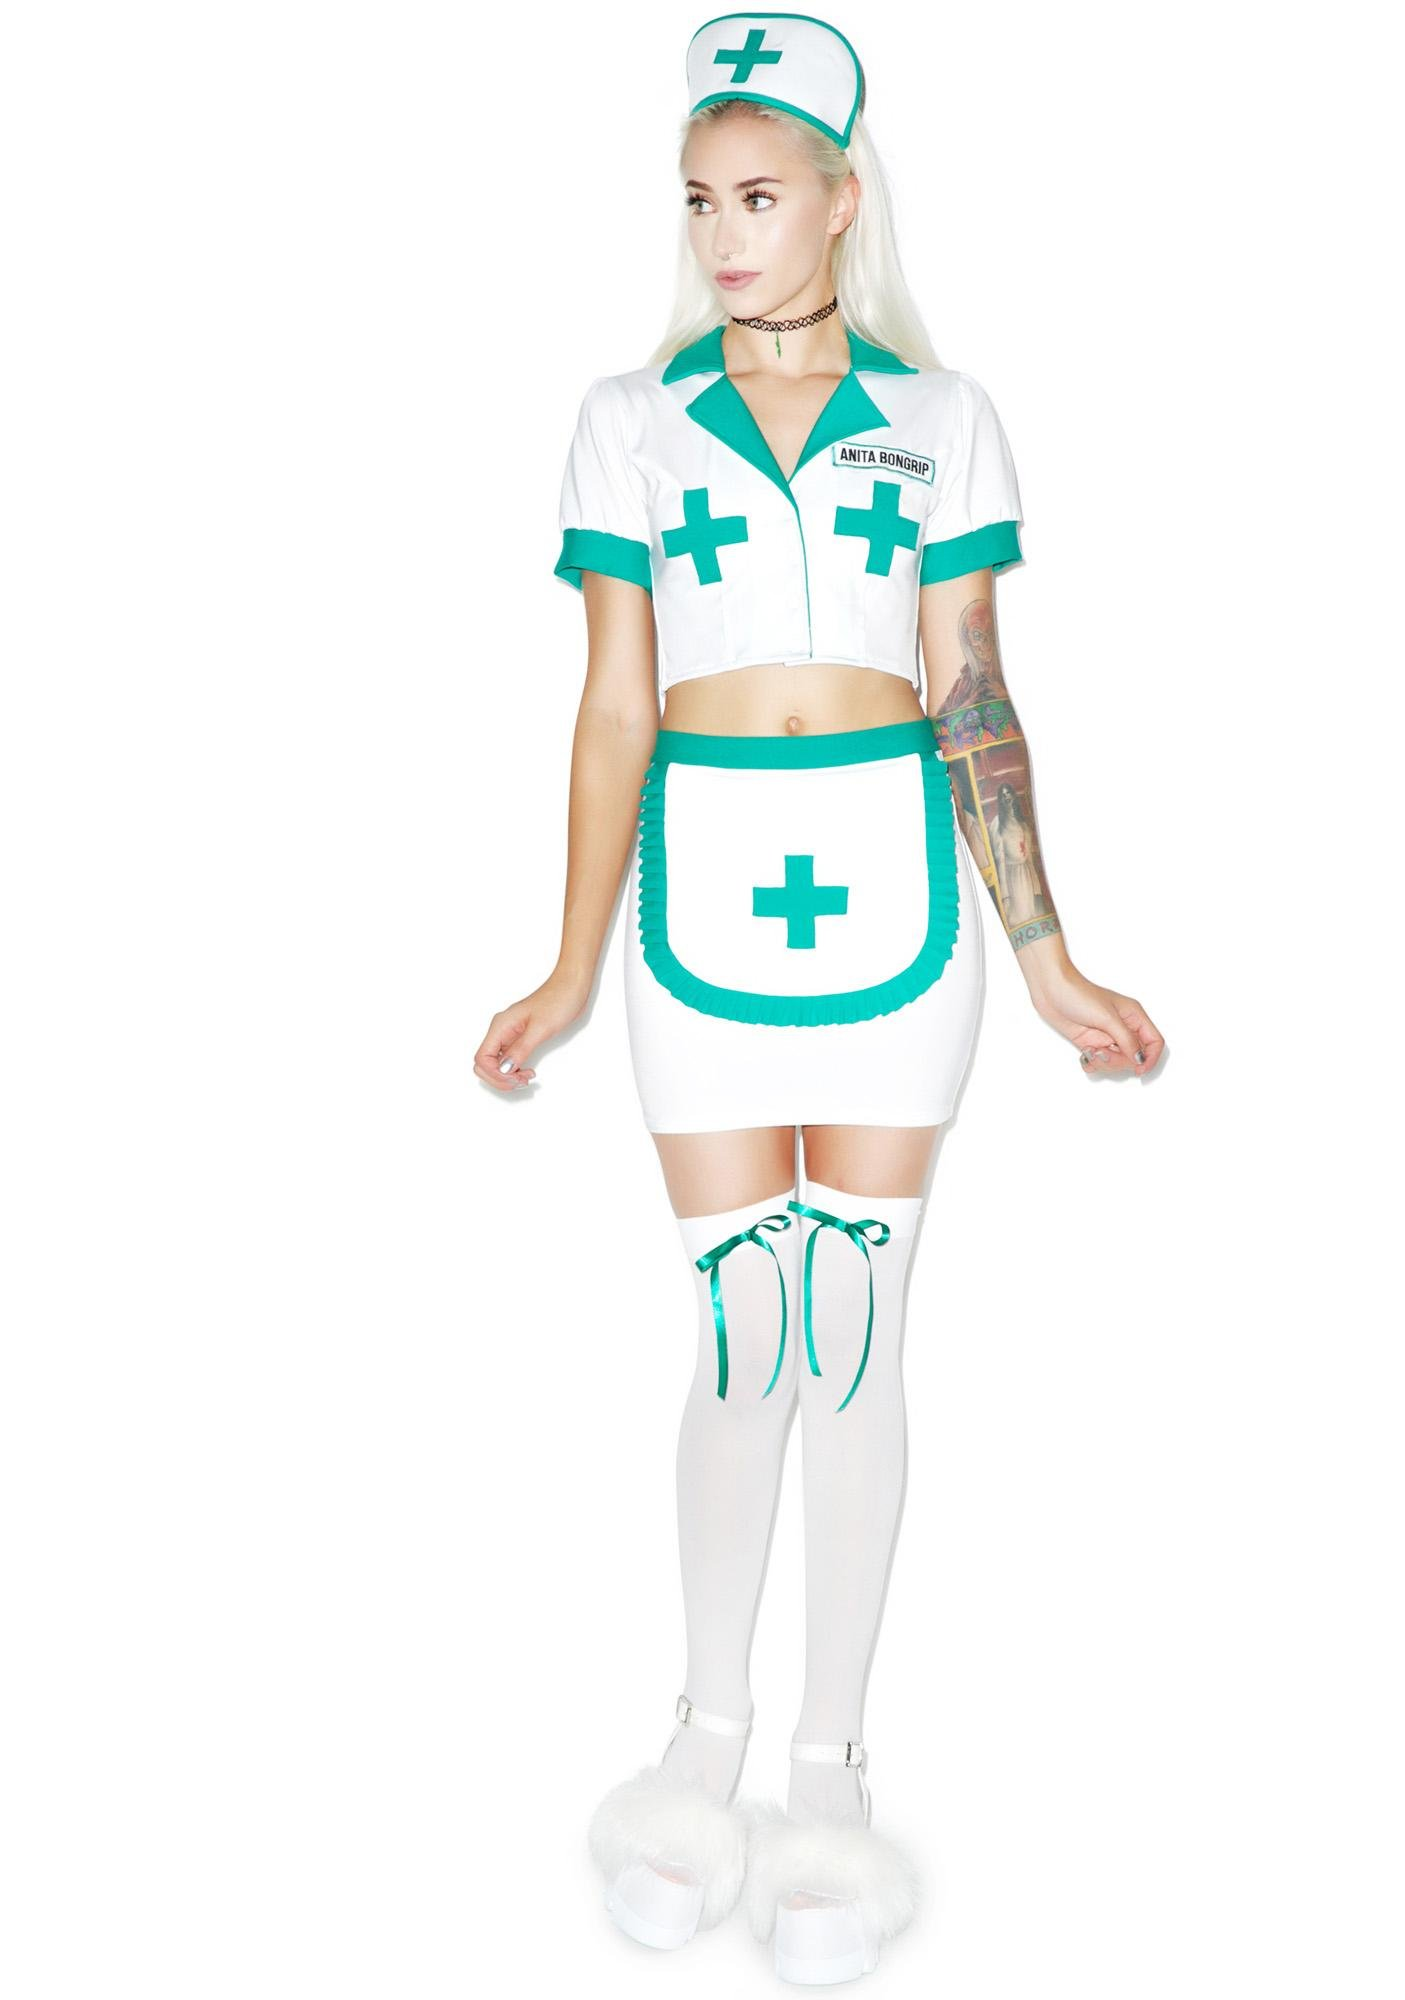 Nurse Anita Bongrip Costume